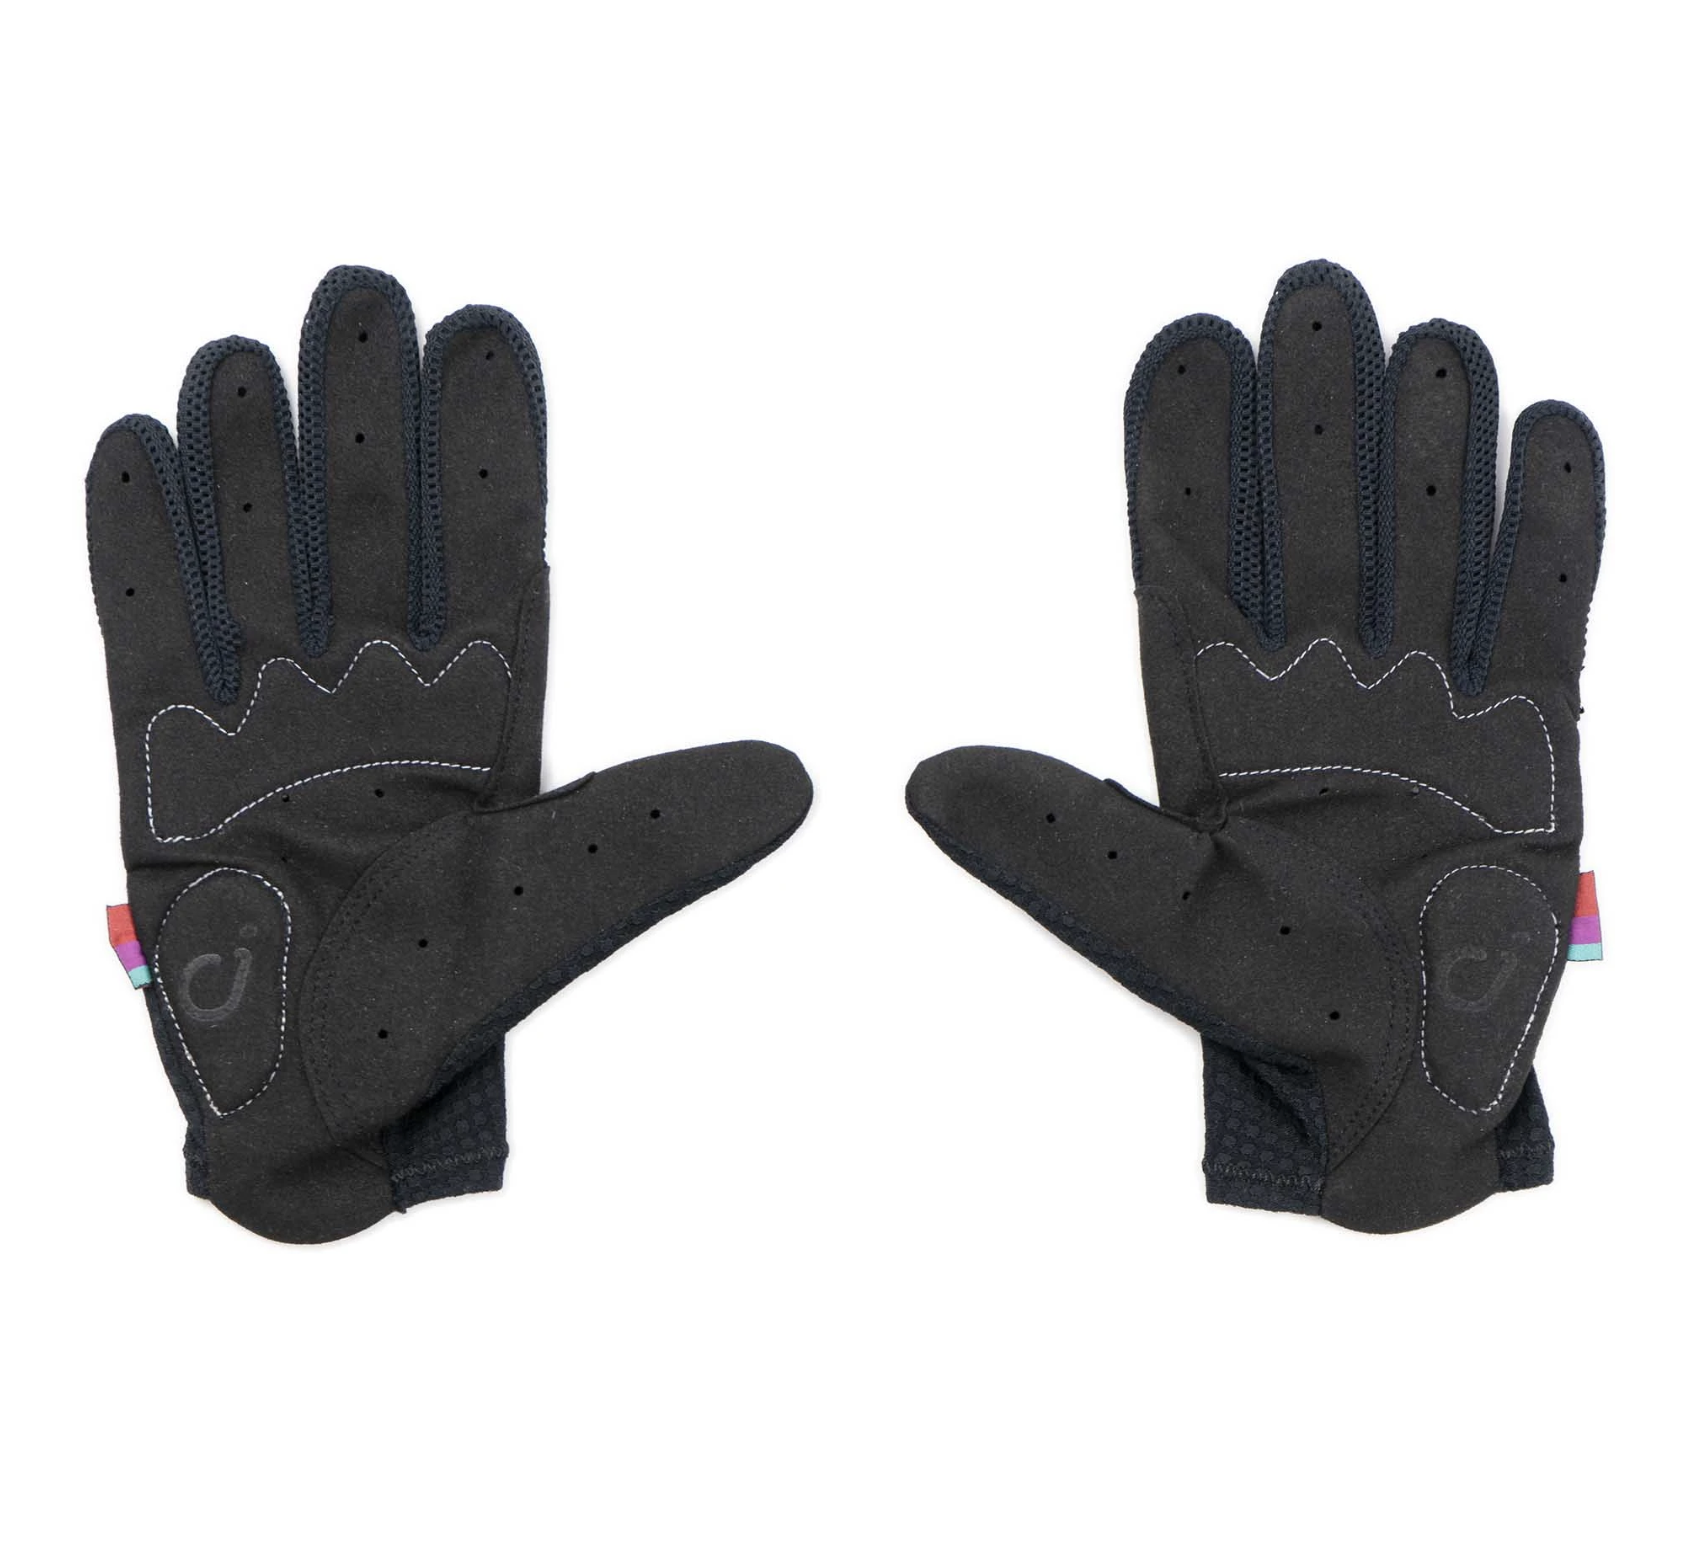 VELOCIO TRAIL GLOVE ACCESSORY